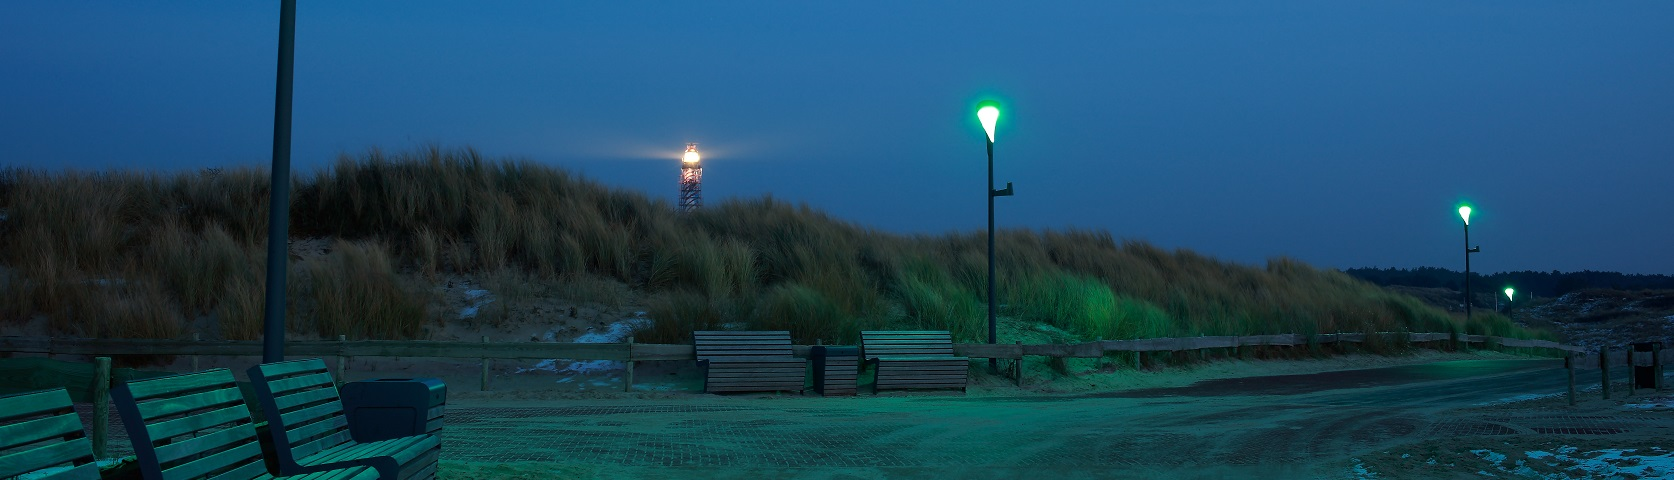 Philips Lighting voorziet Ameland van duurzame connected ...